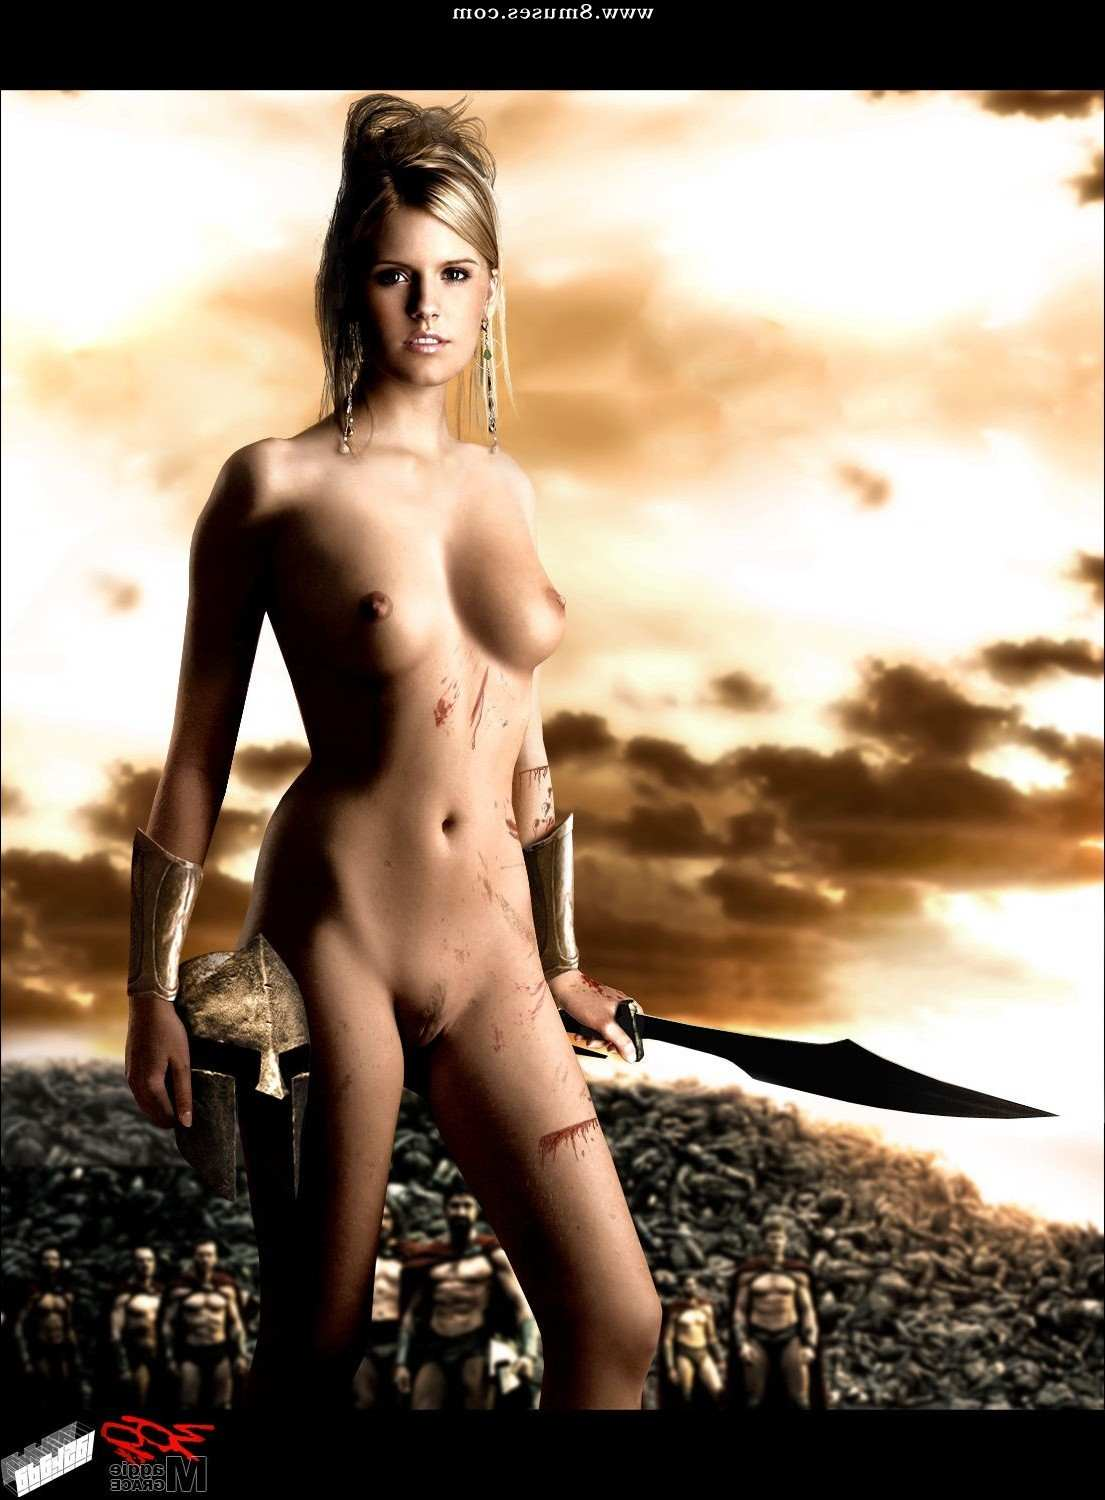 Fake-Celebrities-Sex-Pictures/Maggie-Grace Maggie_Grace__8muses_-_Sex_and_Porn_Comics_3.jpg